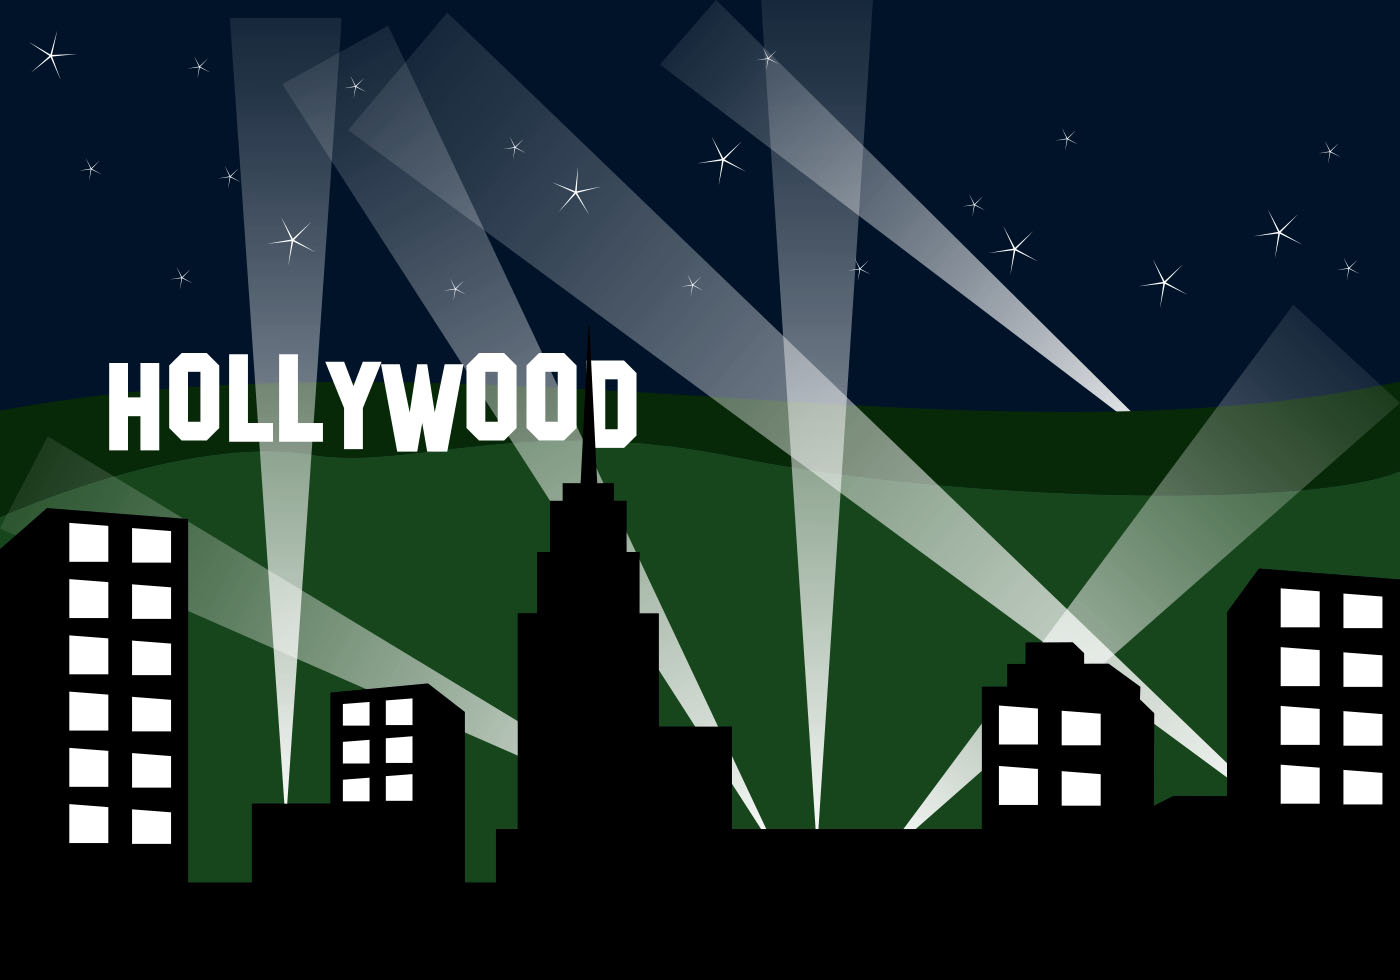 Hollywood Landscape At Night - Download Free Vector Art ...